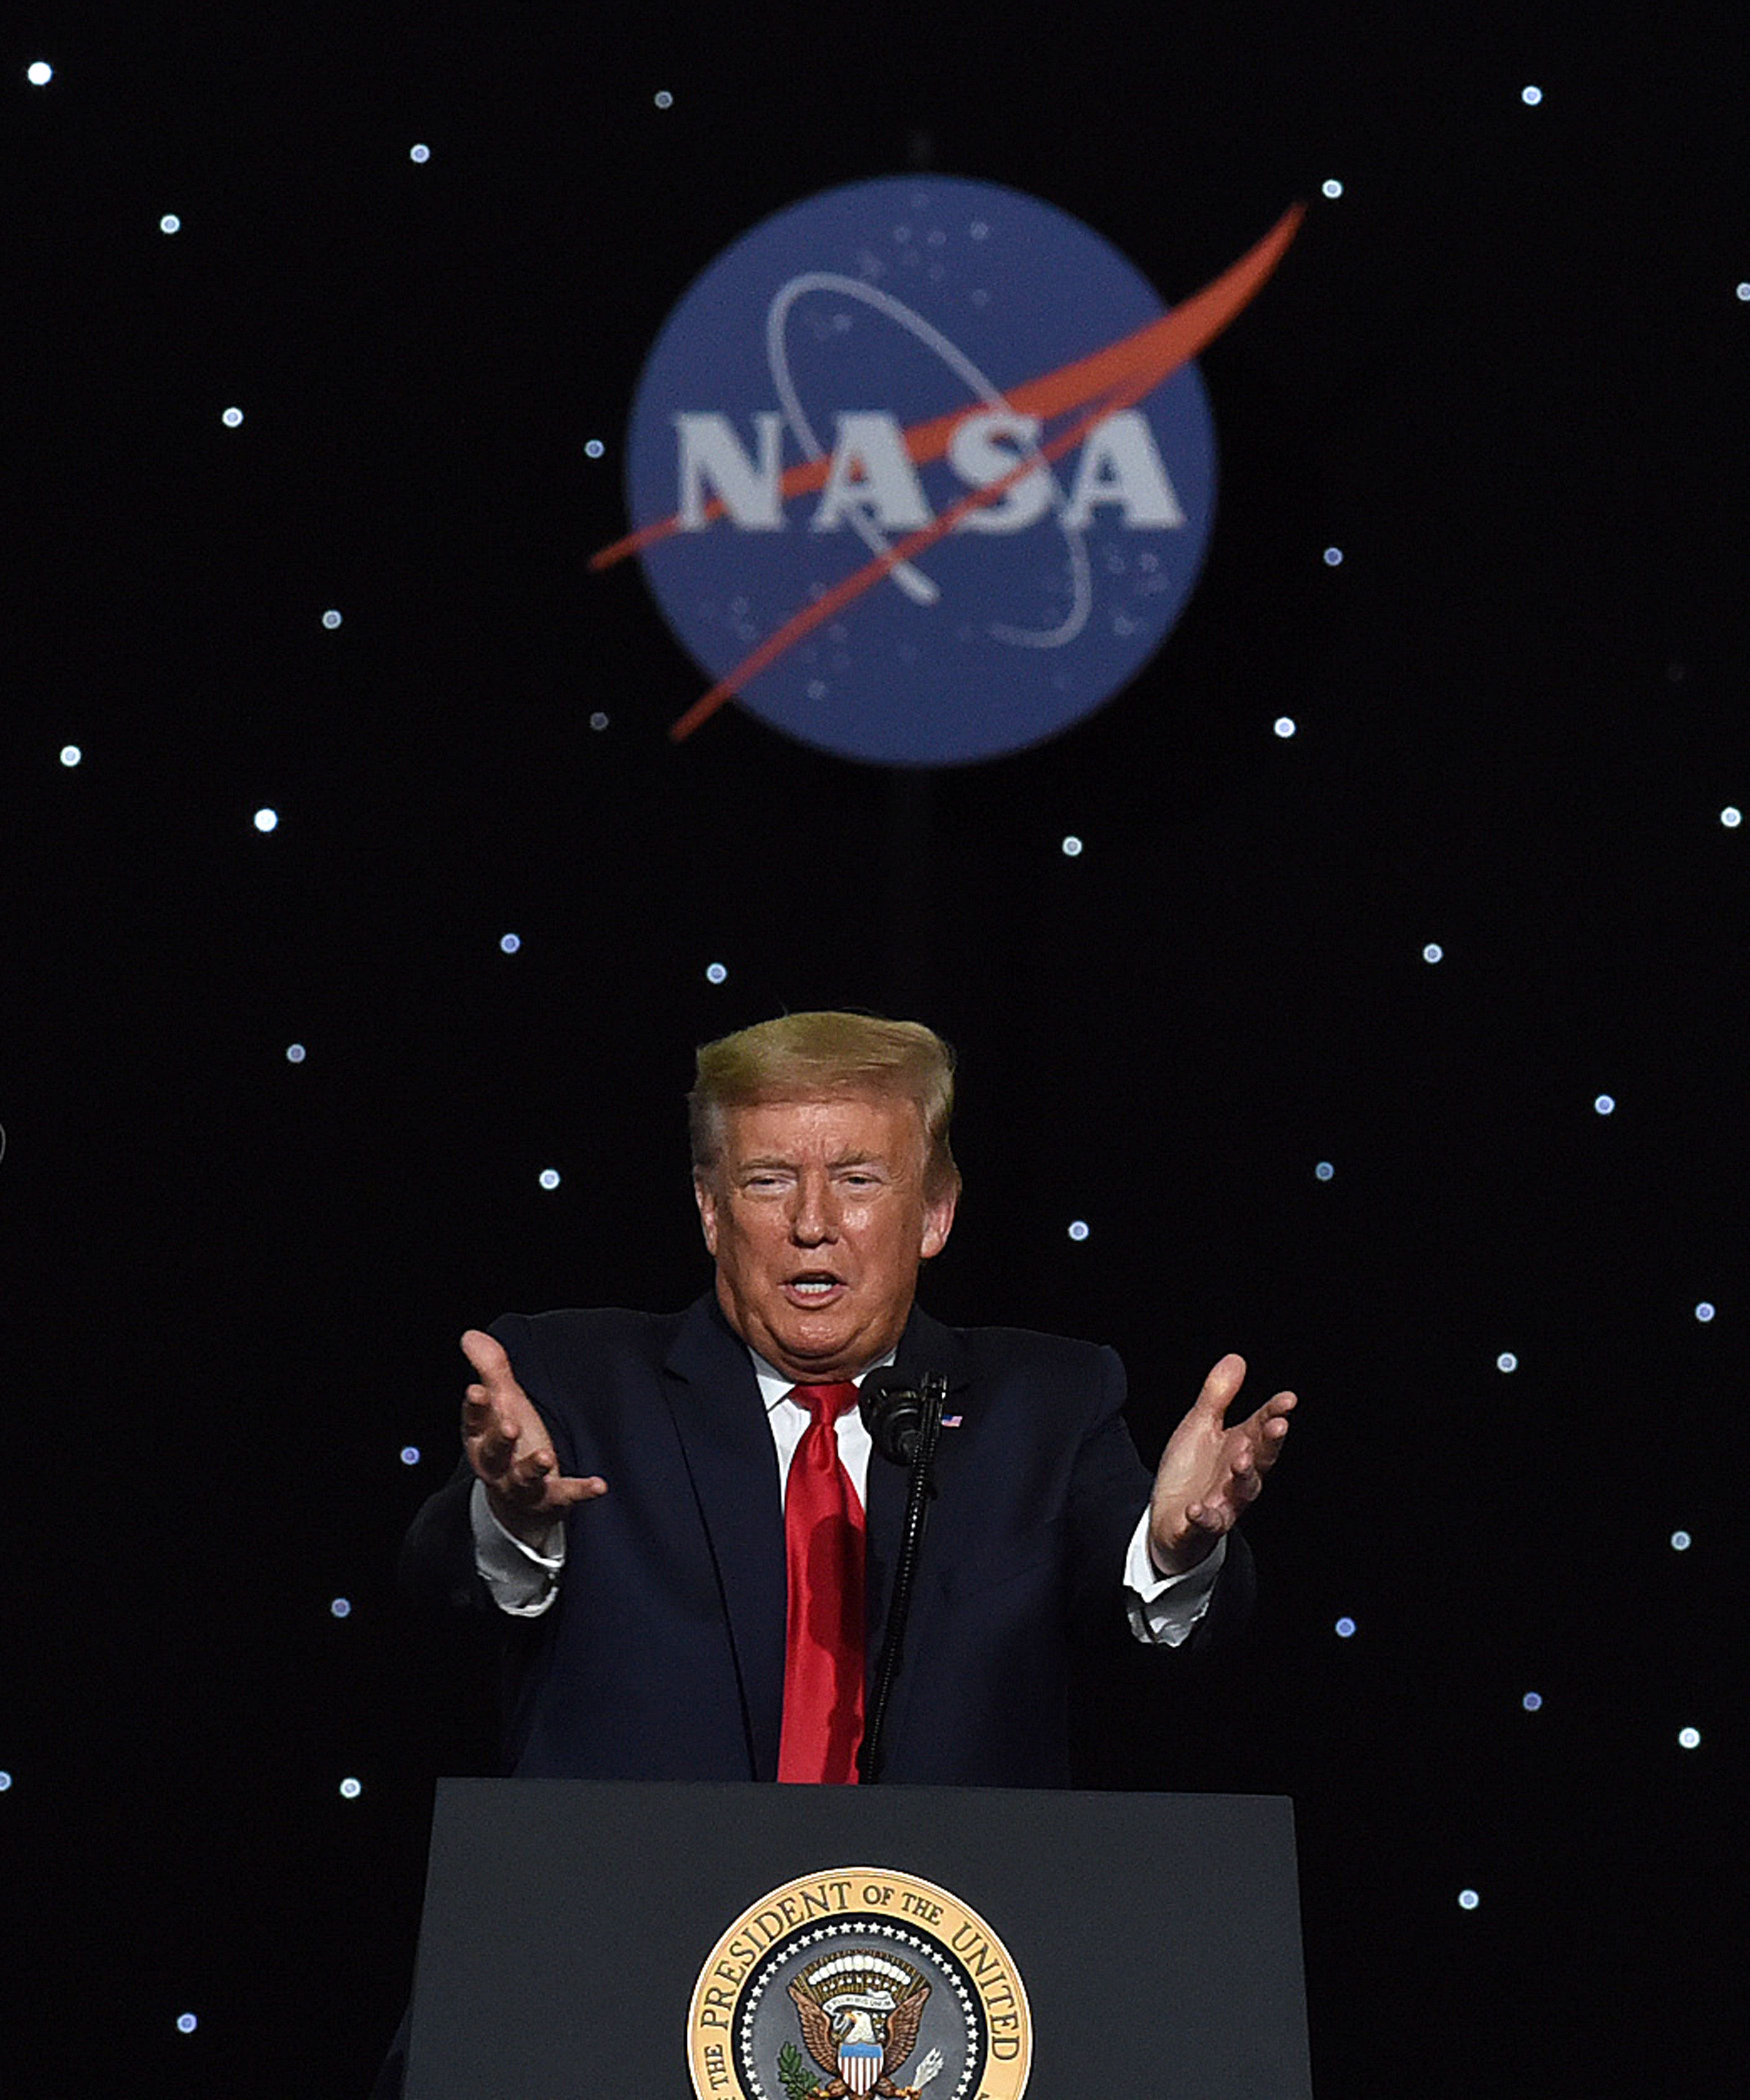 No, Trump Didn't Bring NASA Back from the Dead